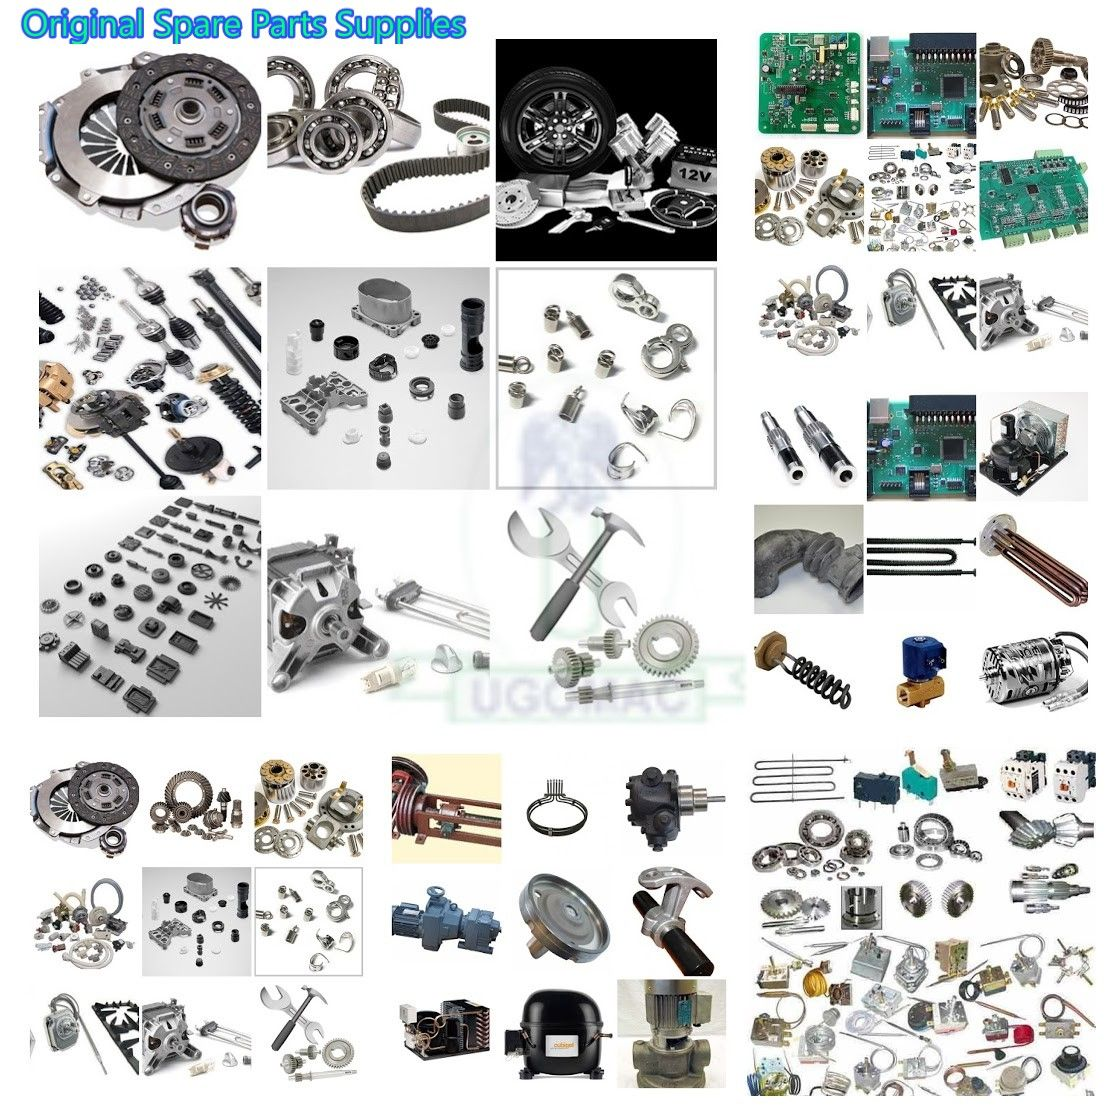 Original Spare Parts For Commercial Kitchen Catering Laundry Dry Cleaning Bakery Pastry And Refrigeration Equipment In One Place